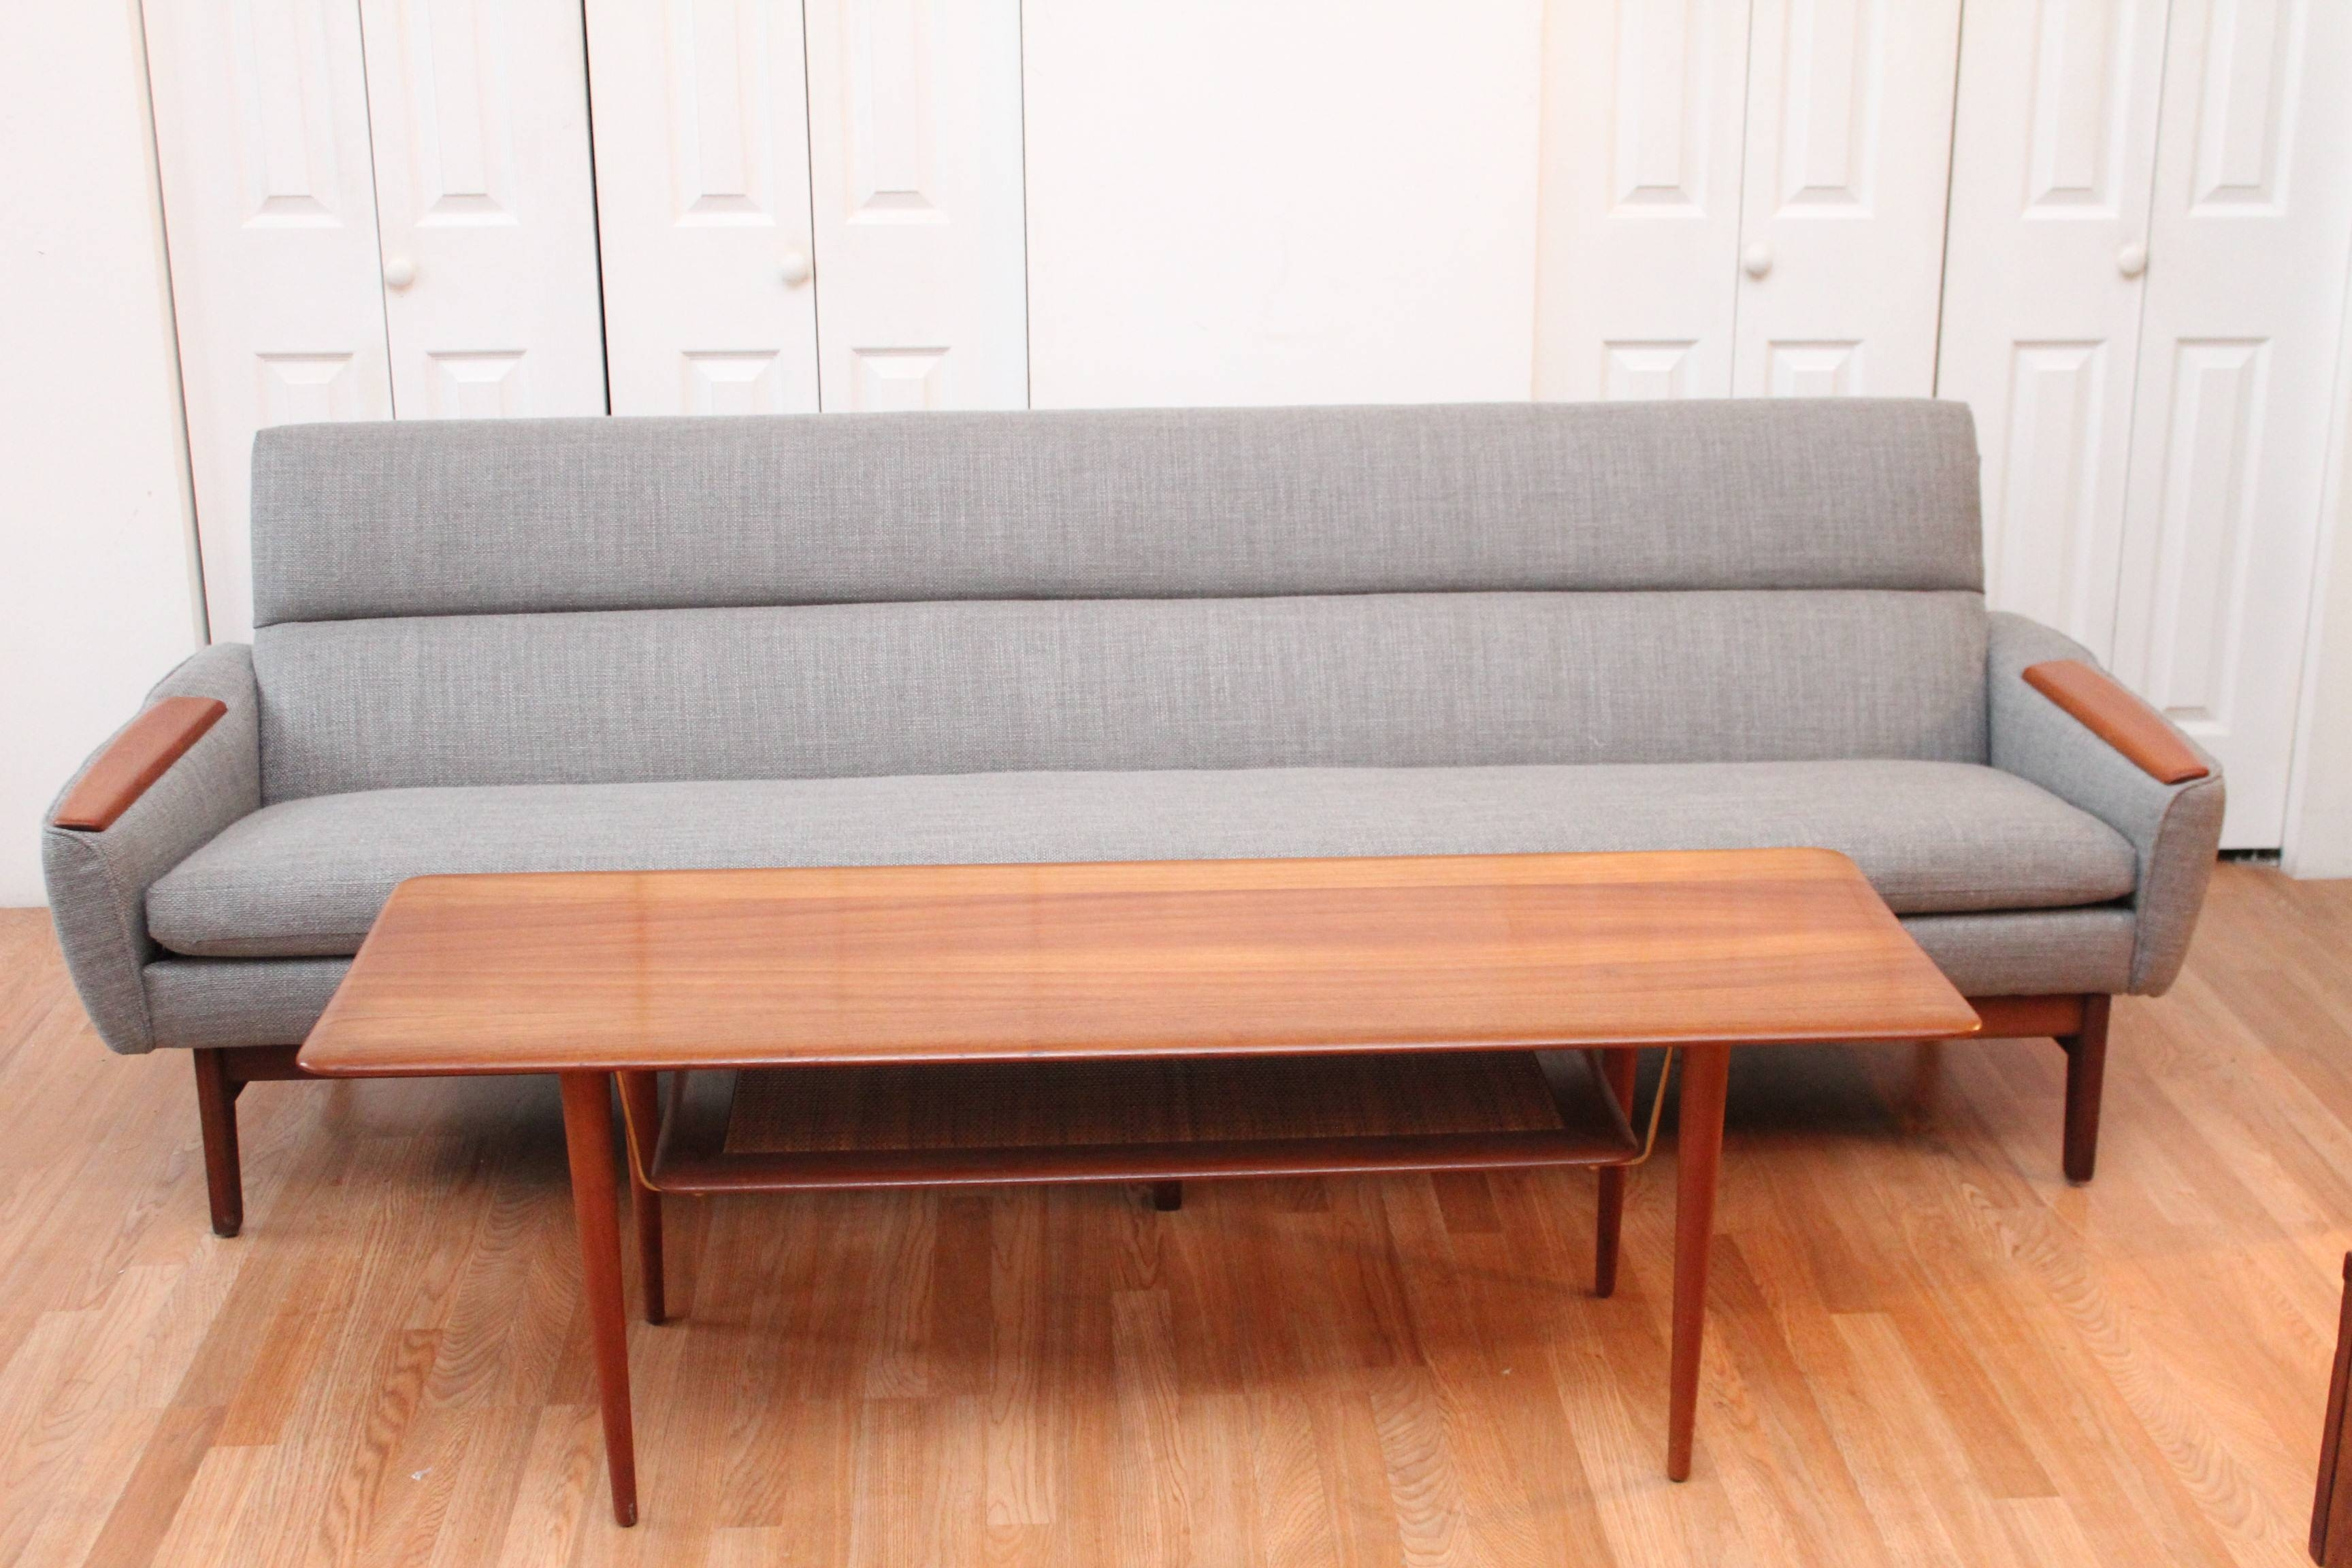 Mid Century Modern Danish Sofa With Teak Armrests | An Orange Moon pertaining to Modern Danish Sofas (Image 6 of 15)